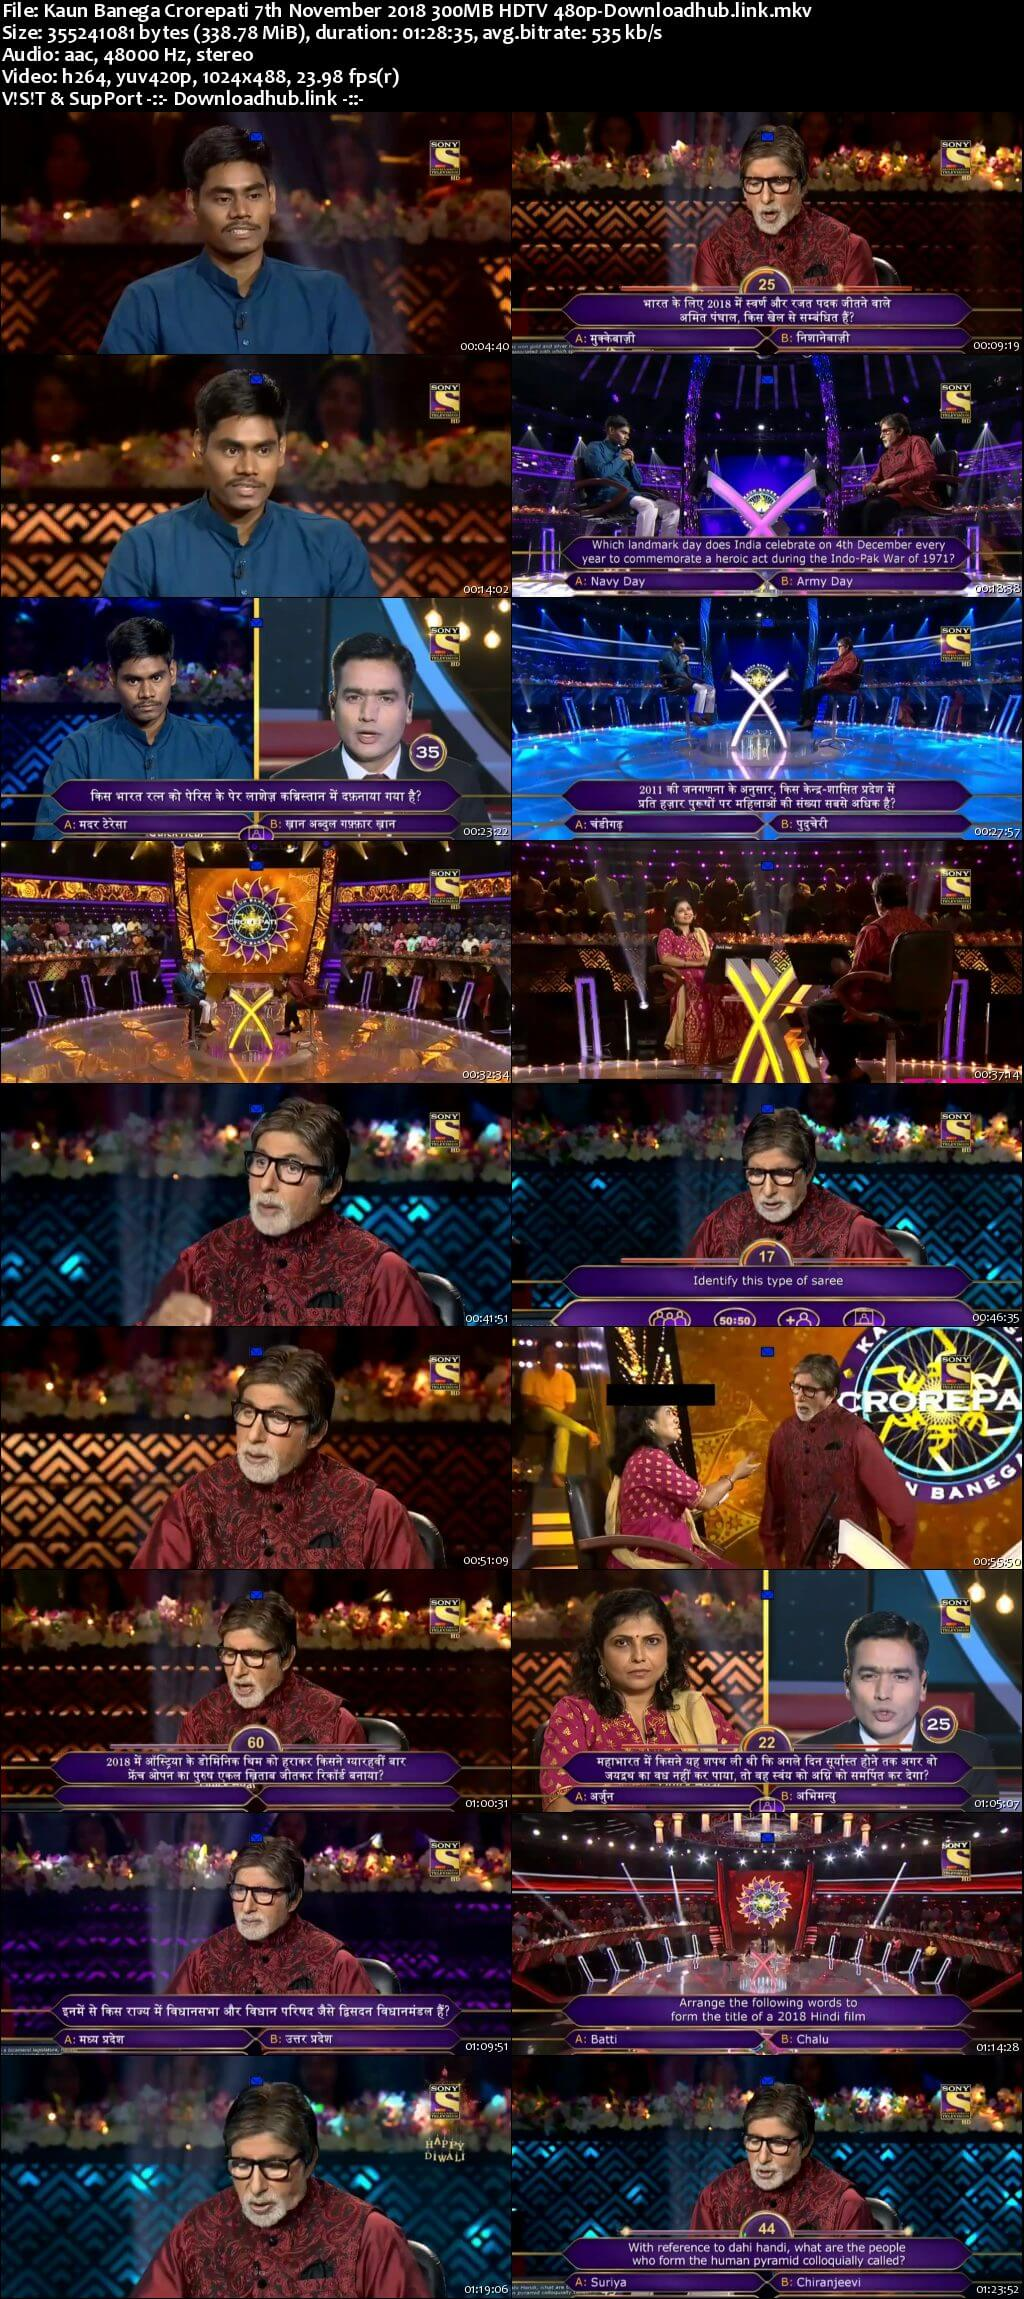 Kaun Banega Crorepati 7th November 2018 300MB HDTV 480p